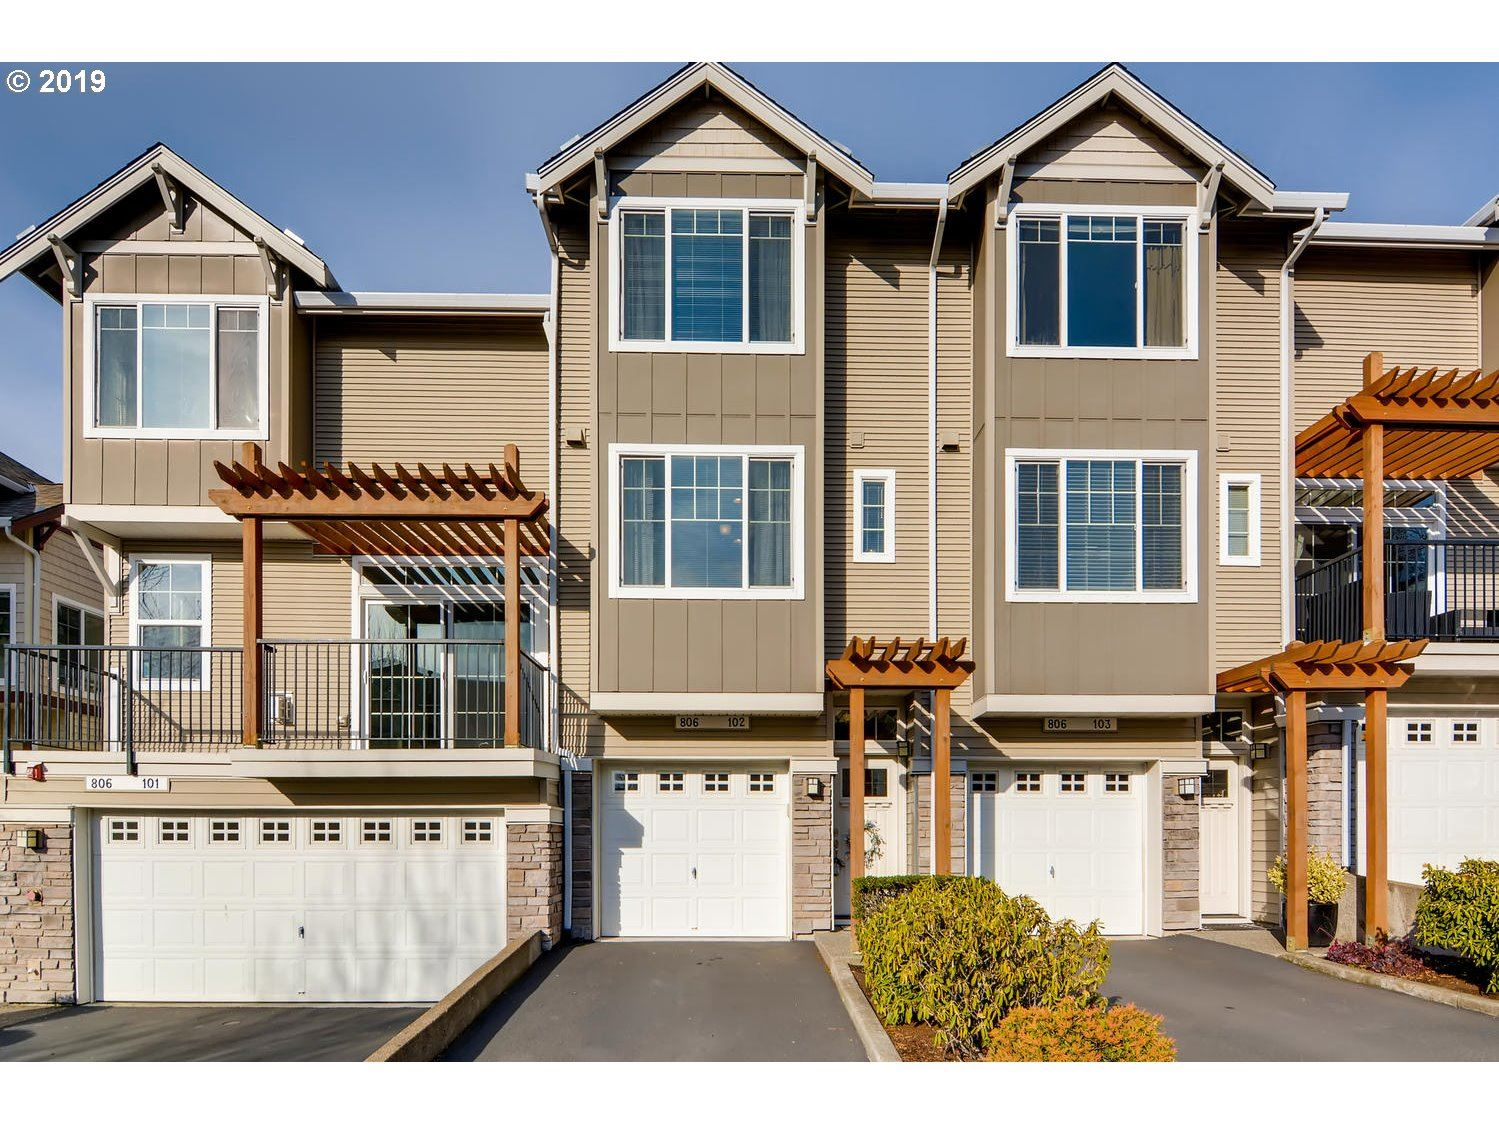 806 NW 118TH AVE #102, Portland, OR 97229 - MLS#: 19077502